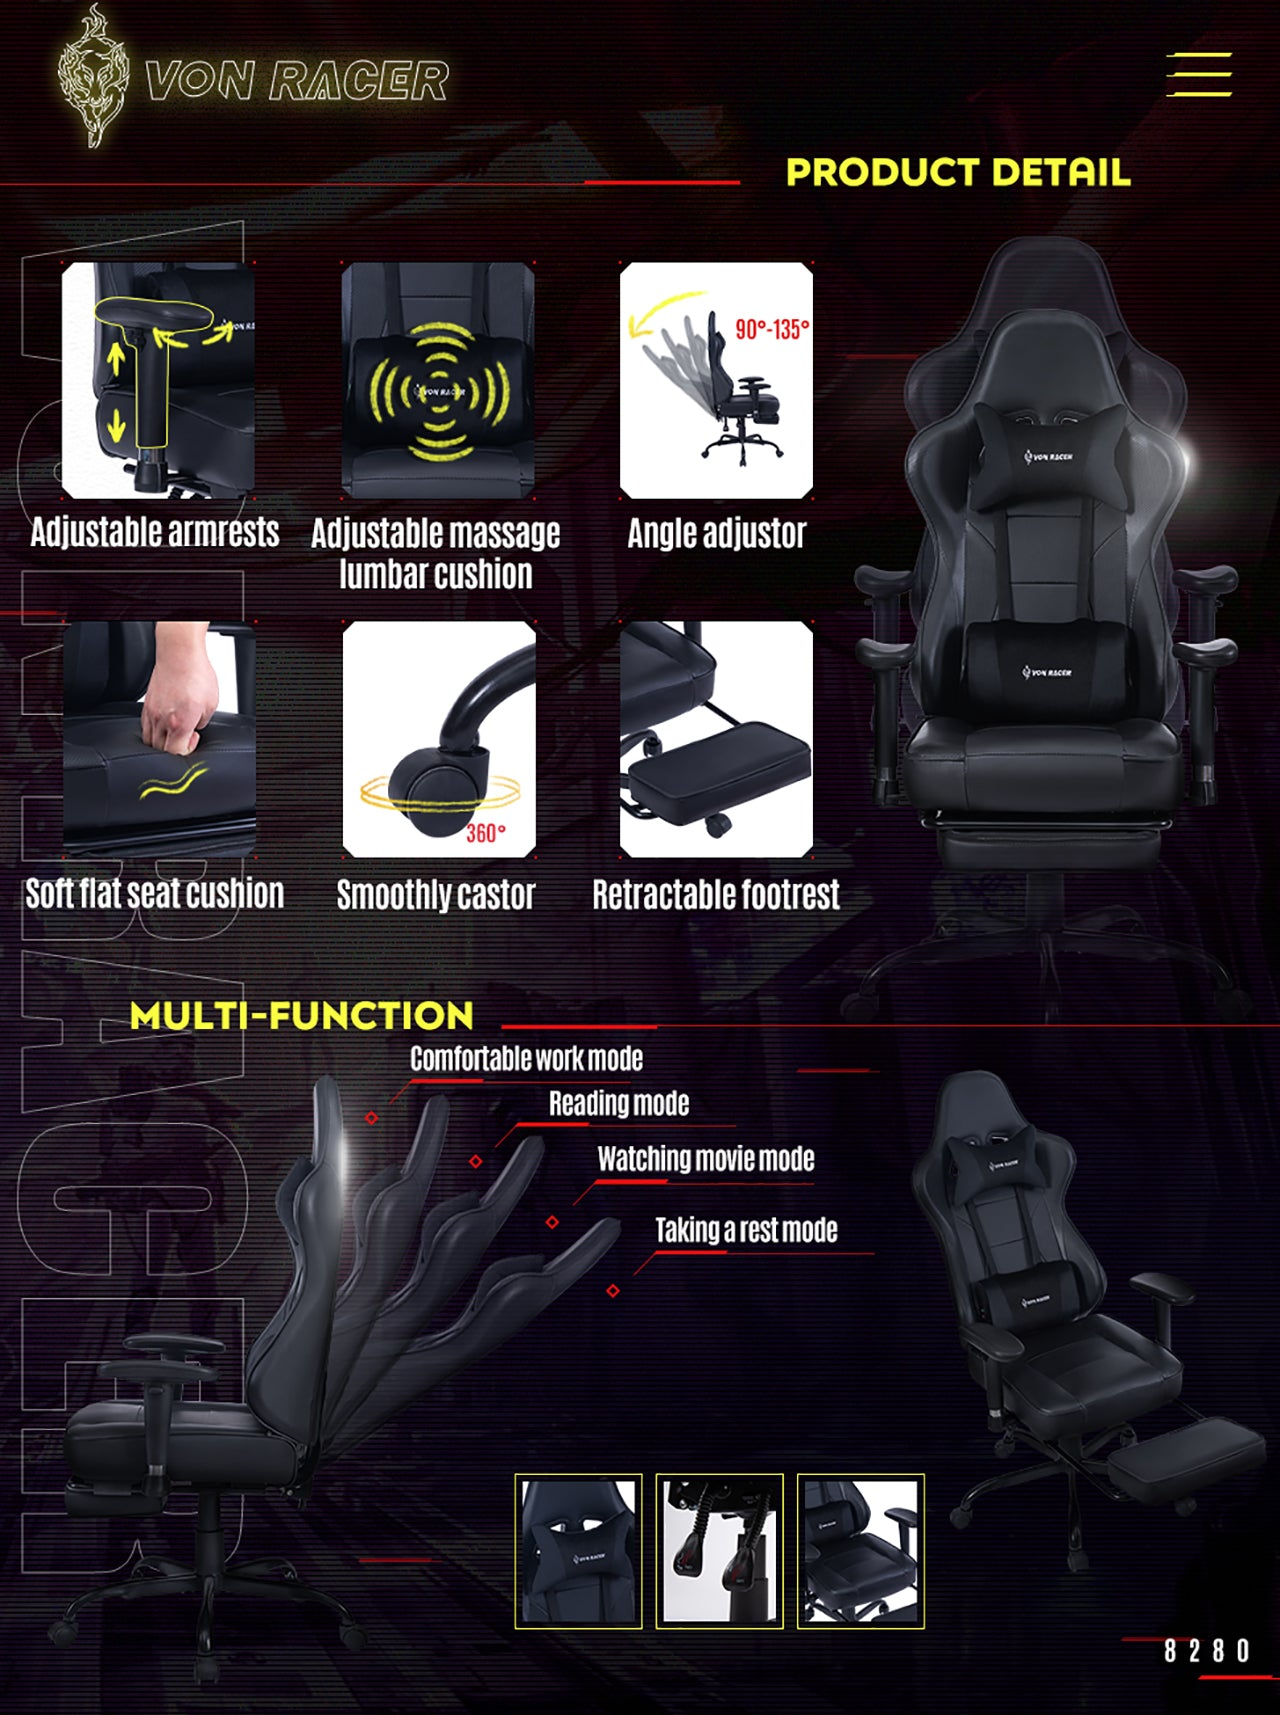 VON RACER ERGONOMIC GAMING CHAIR 8280 BLACK FEATURES